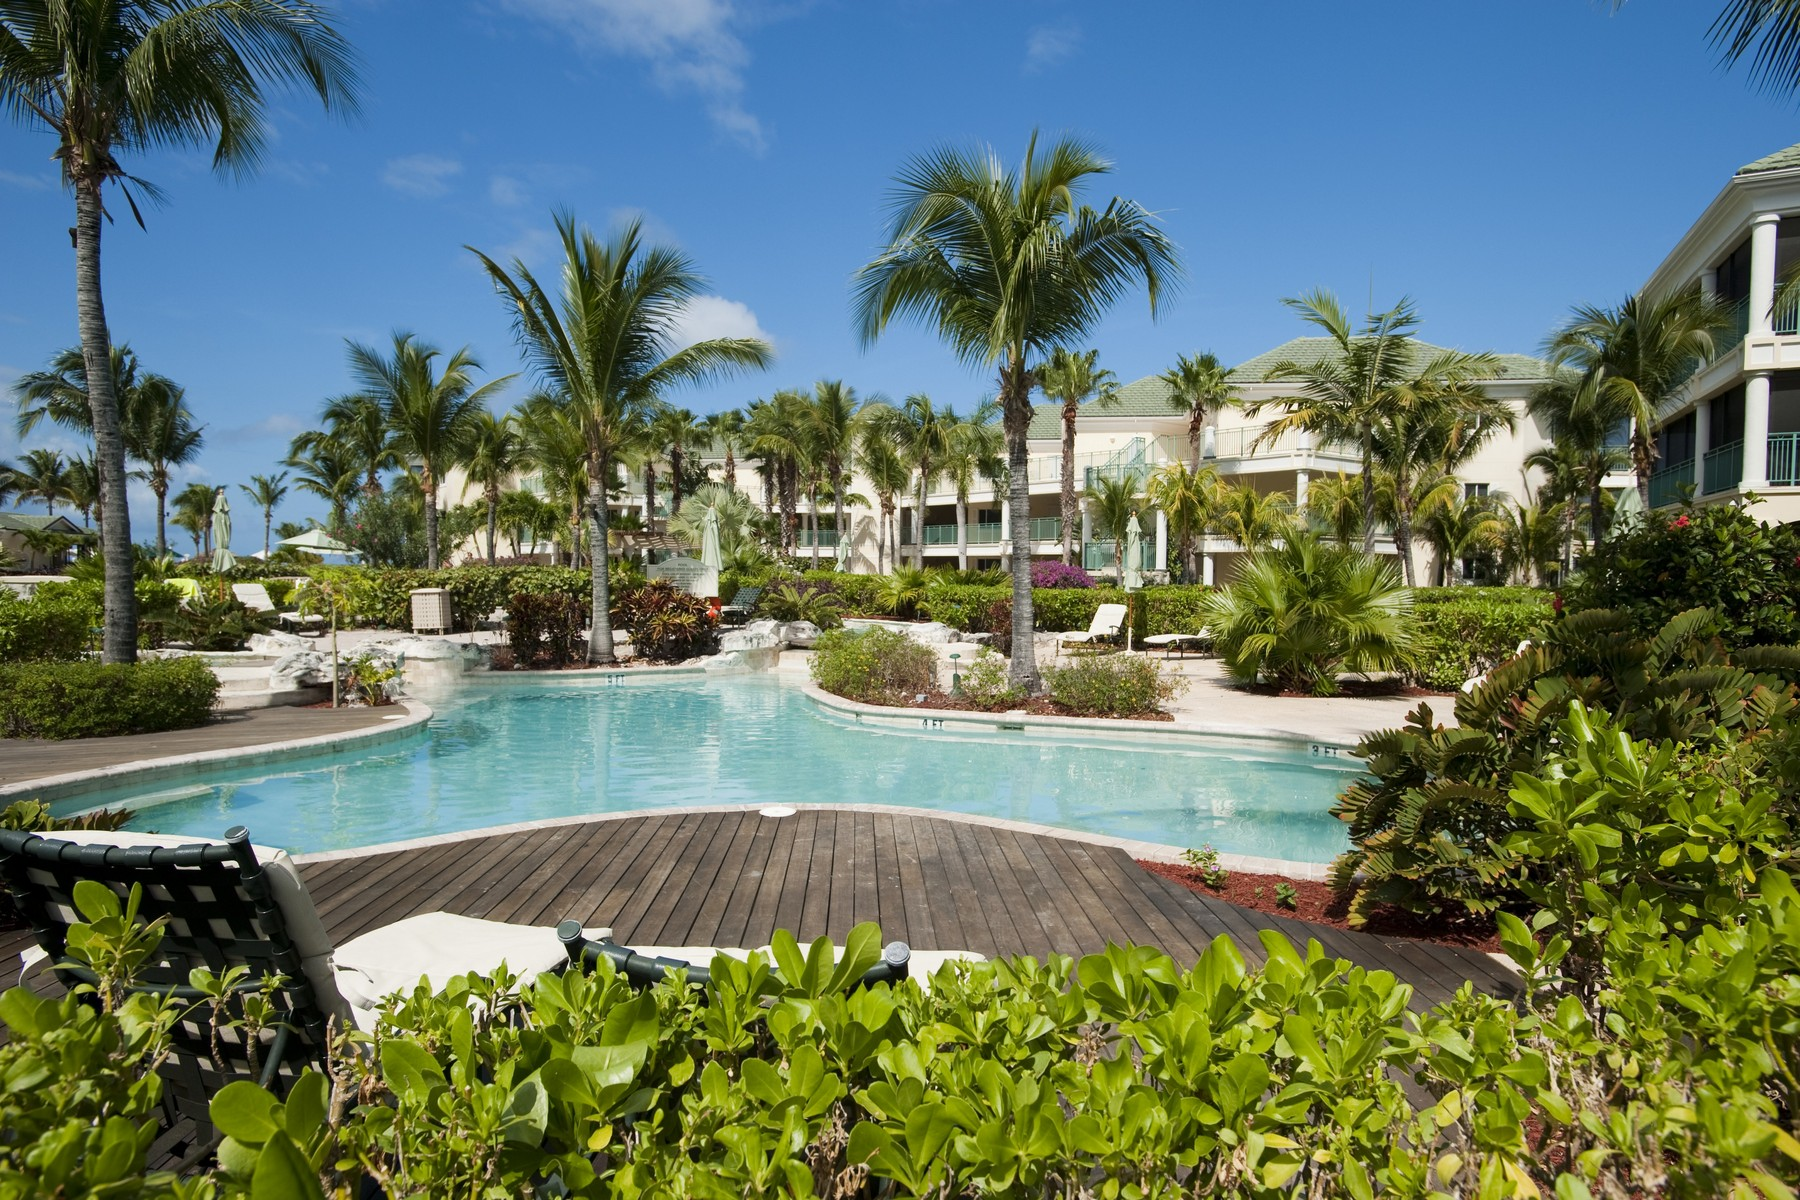 Additional photo for property listing at The Sands at Grace Bay - Suite 5303 The Sands On Grace Bay, Grace Bay, Providenciales Turks And Caicos Islands